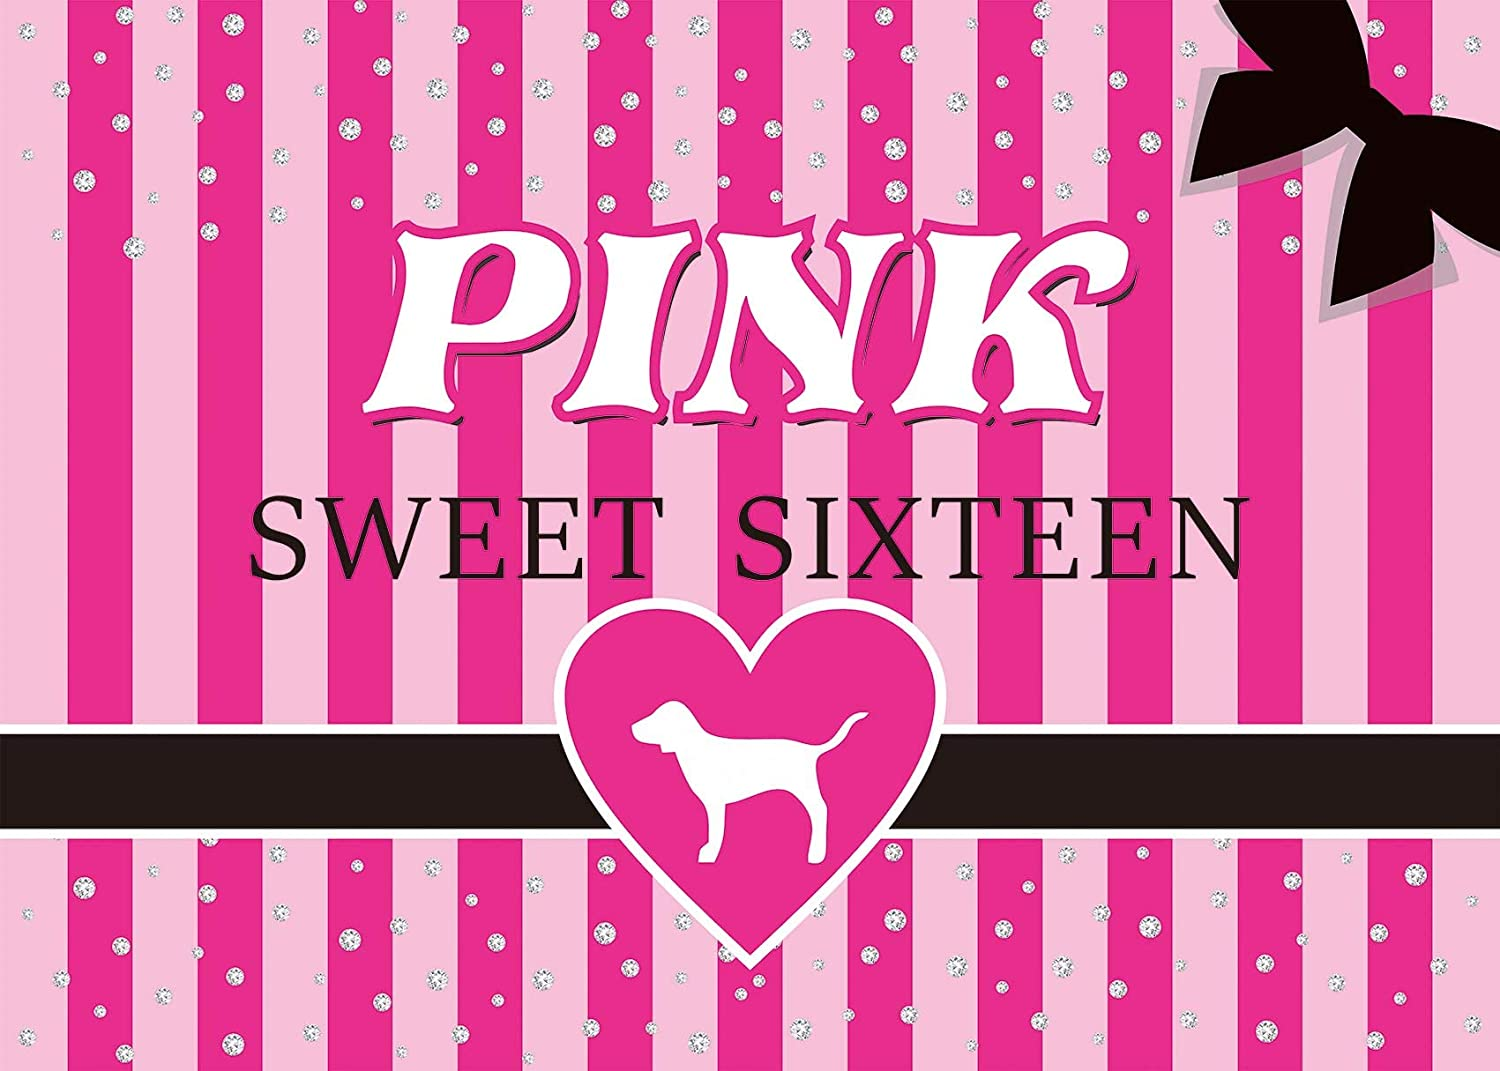 Fotupuul Silver Diamond Pink Striped Sweet Sixteen Photography Backdrops Sweet 16 Party Decoration Banner Background 7x5FT